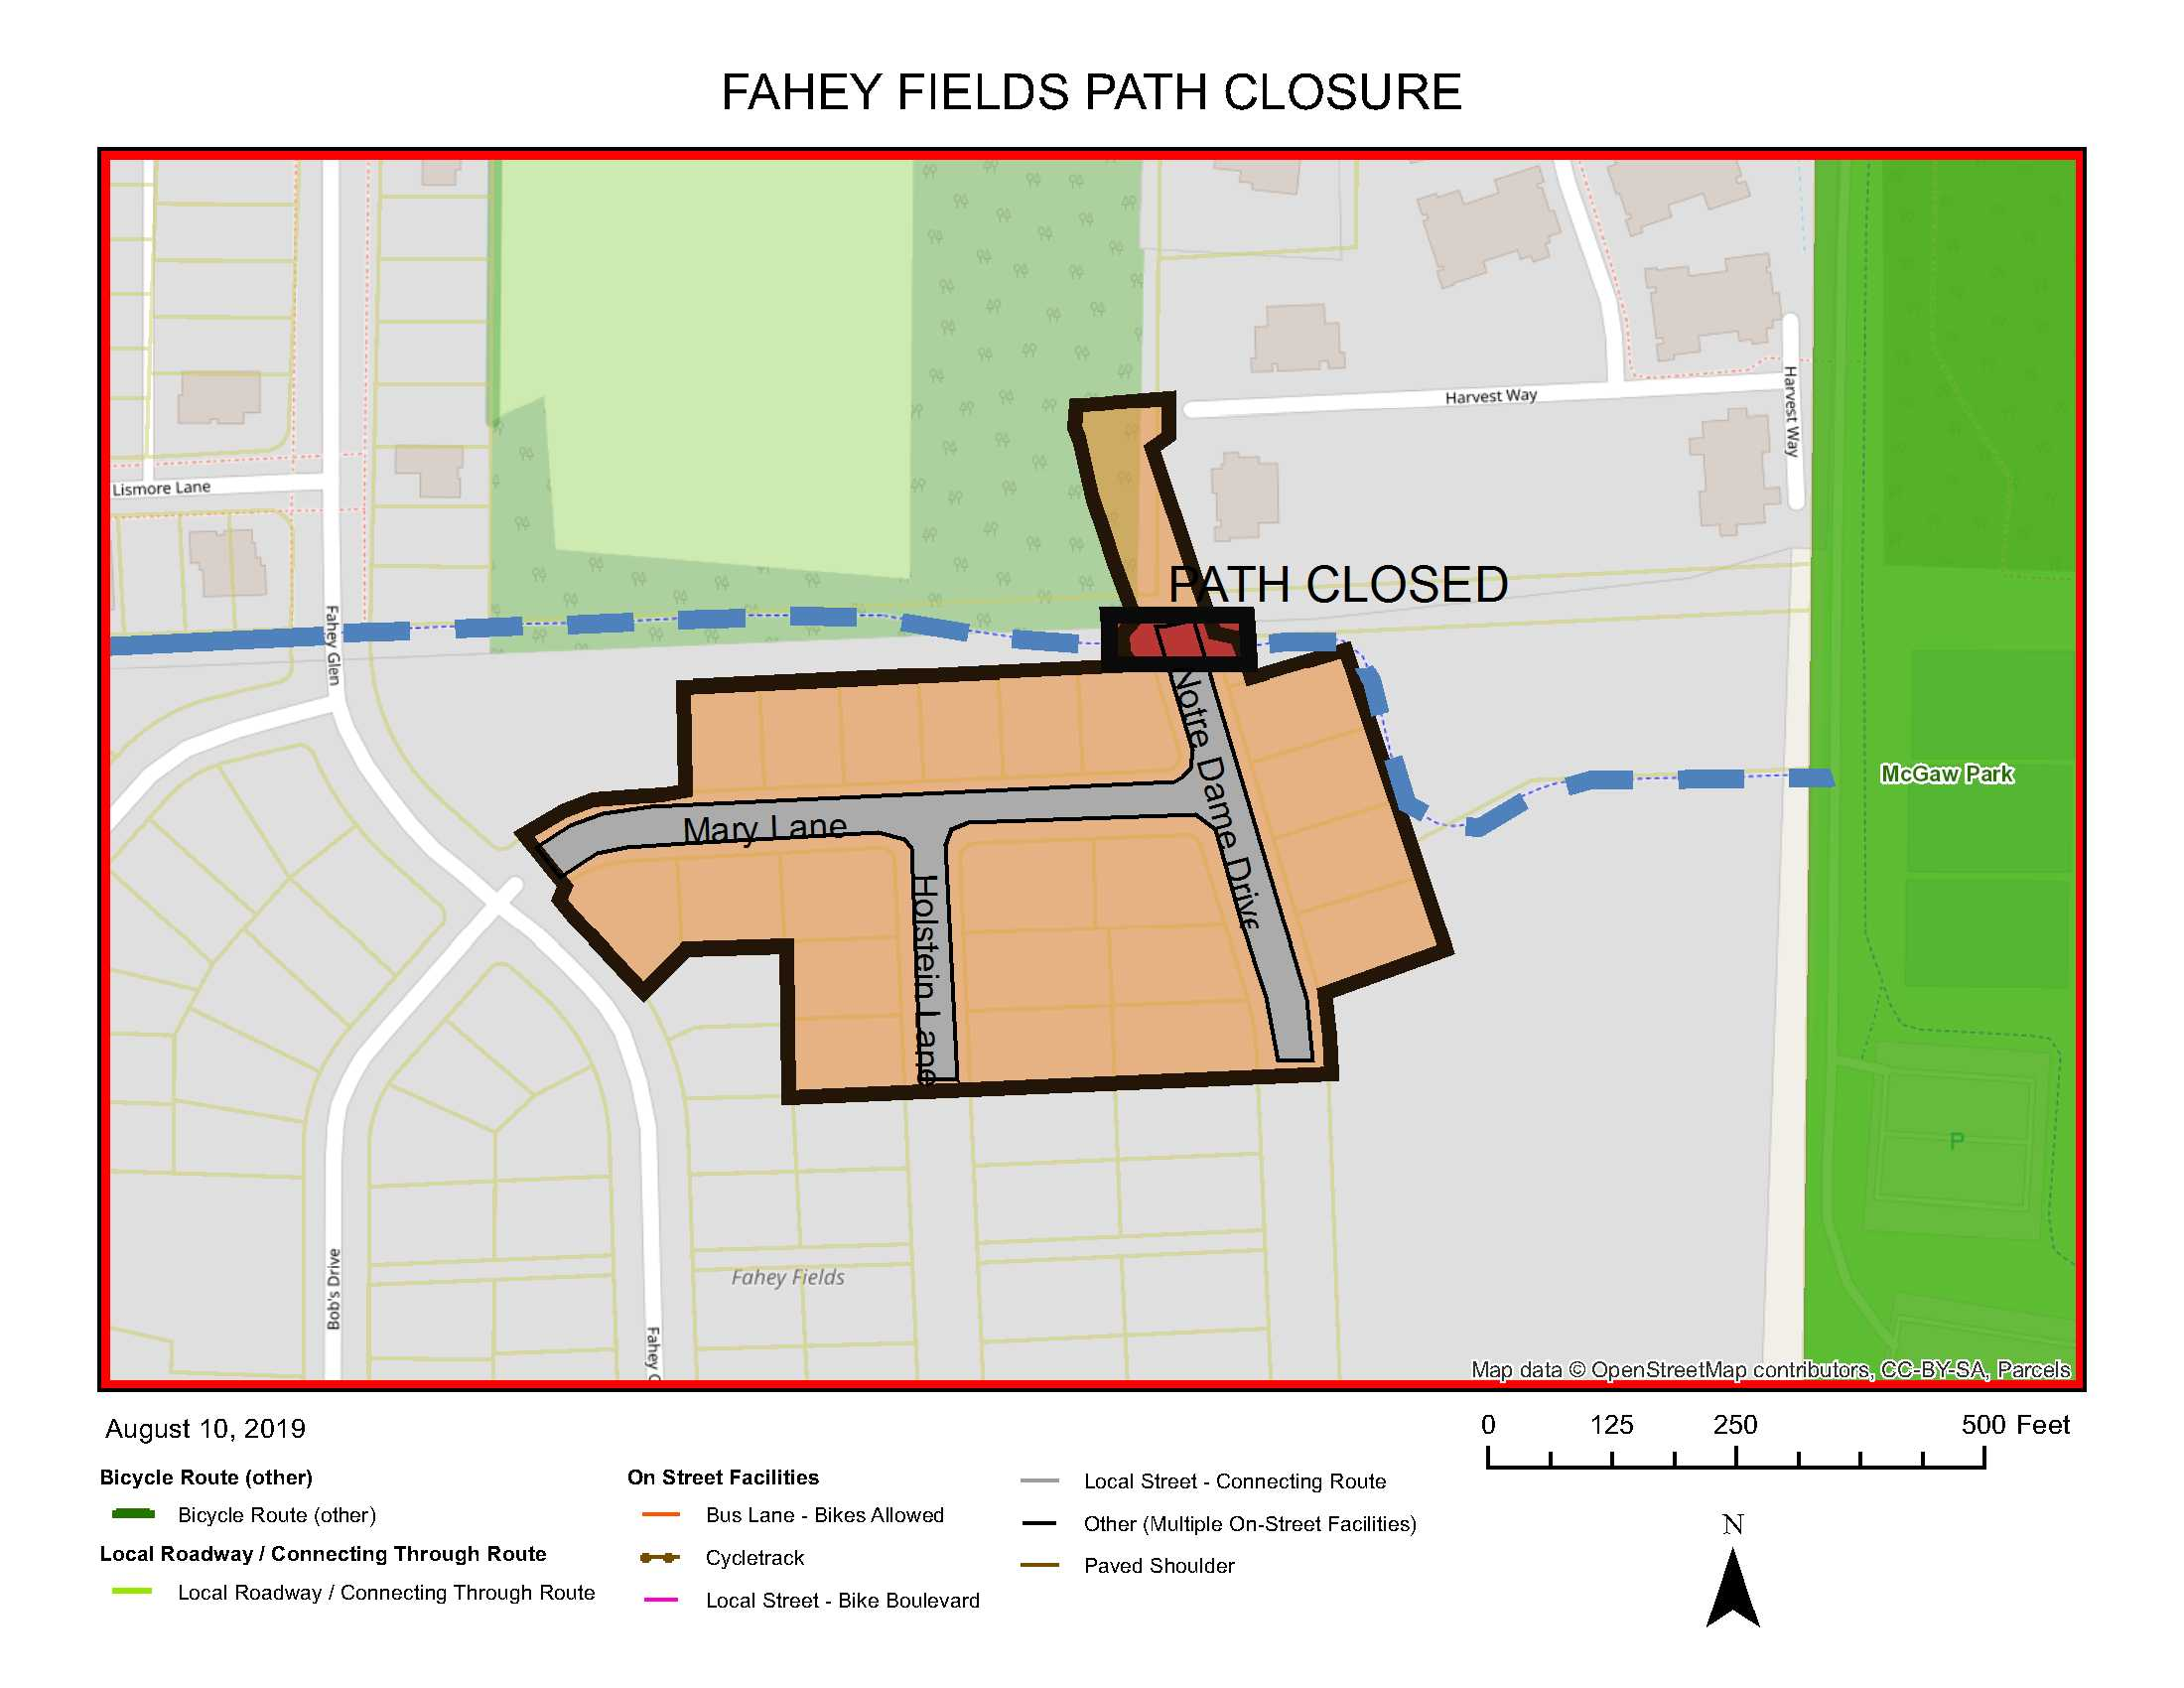 Fahey Fields Phase 3